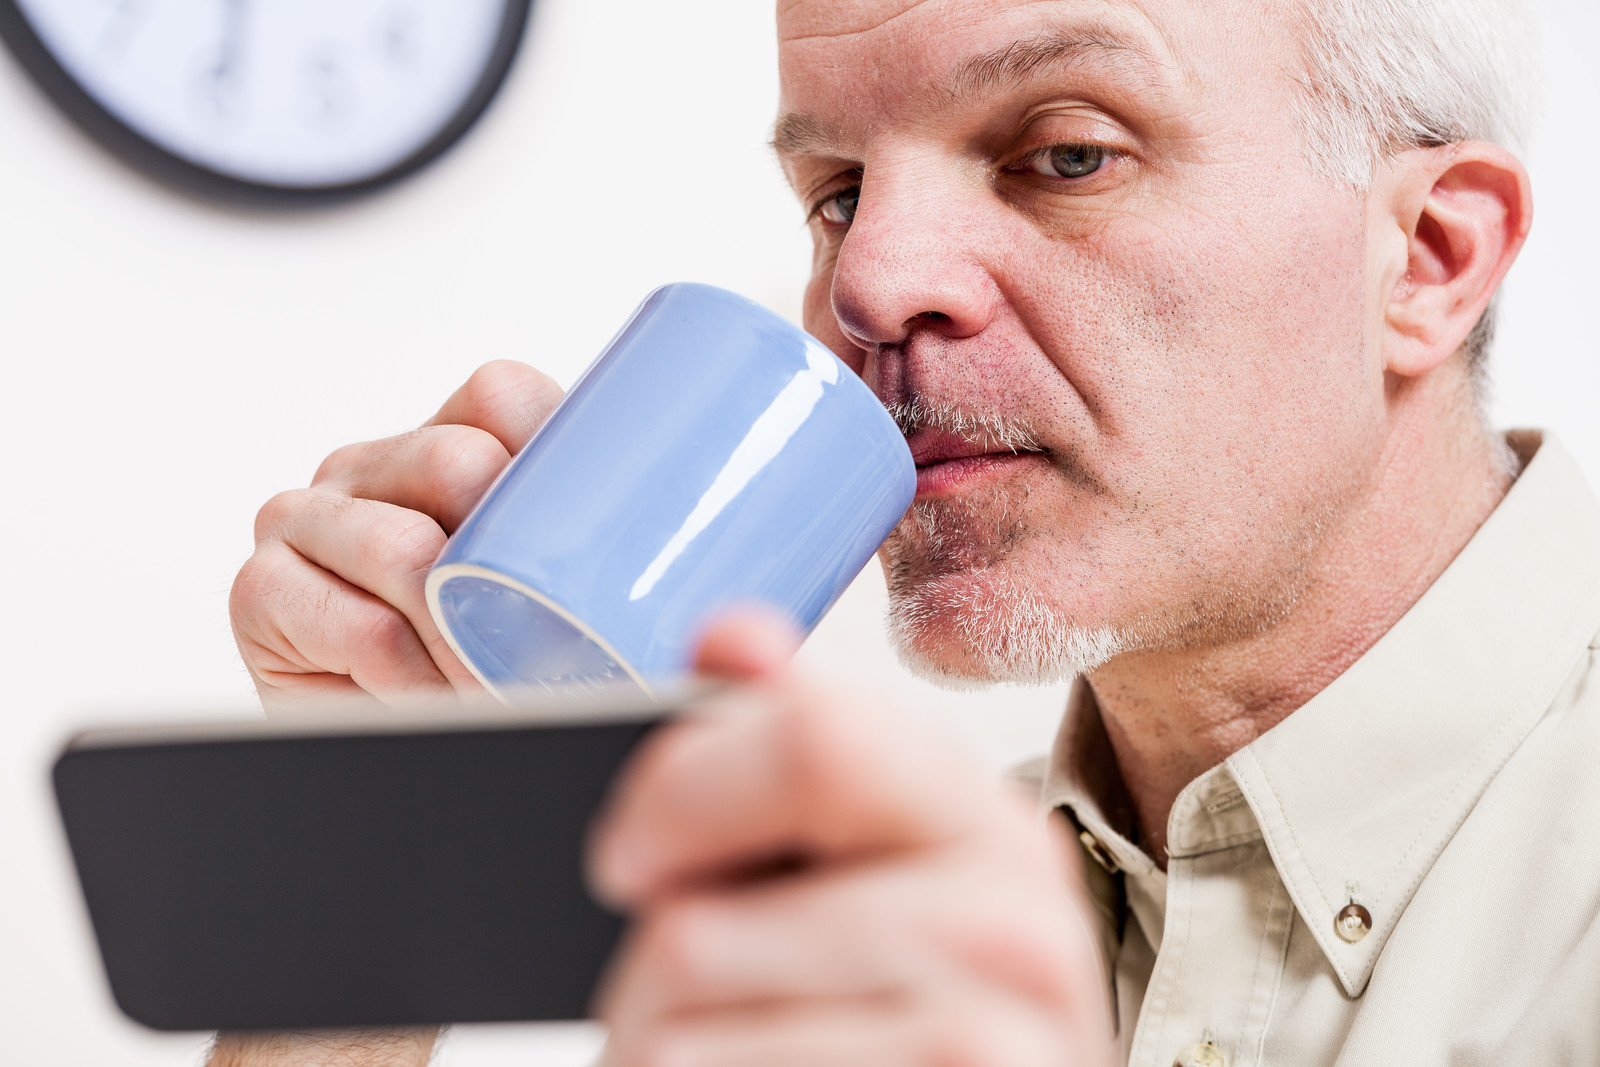 Senior man looking at his phone with a suspicious look on his face drinking a cup of coffee